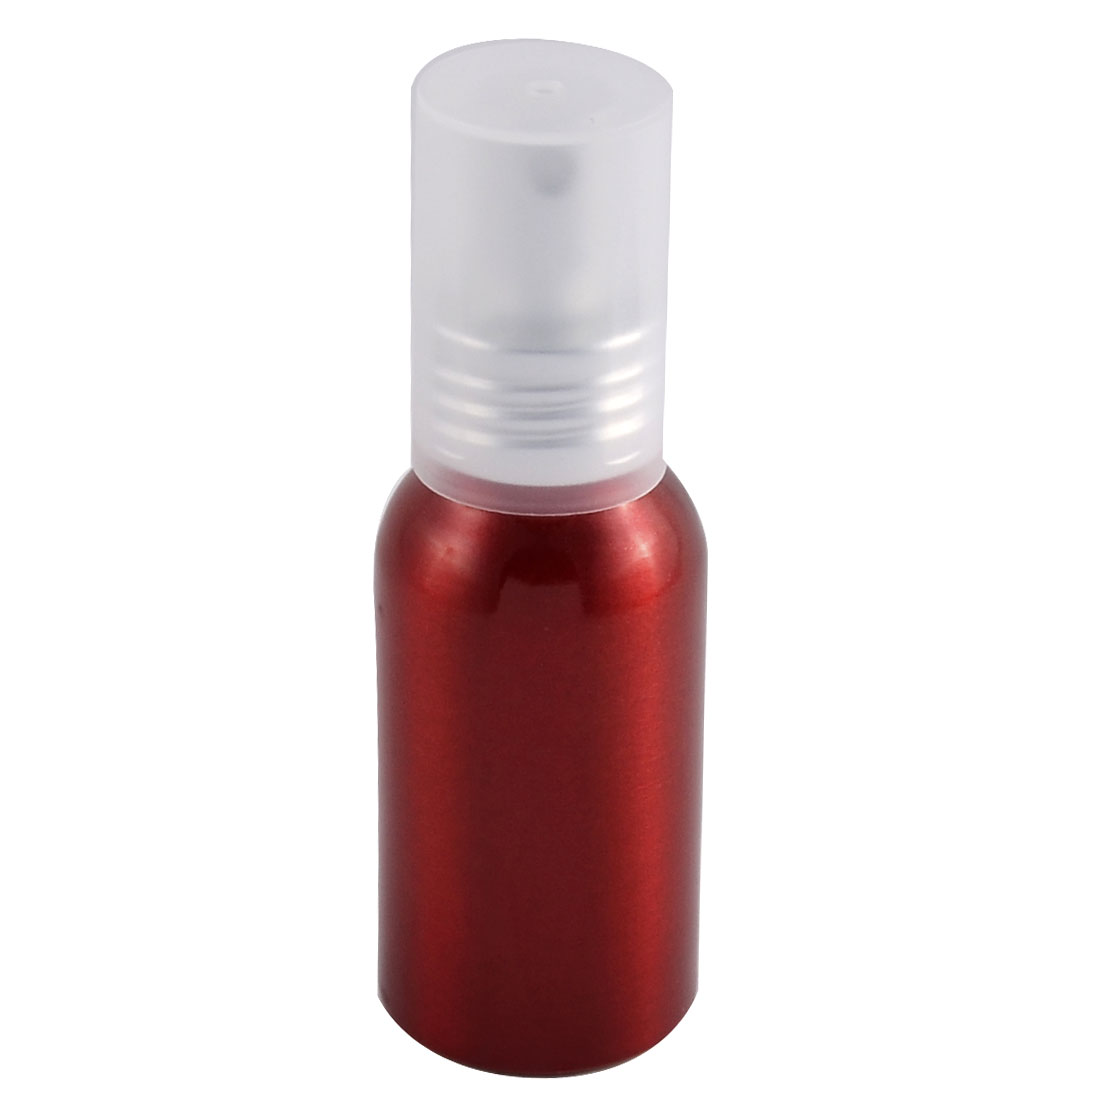 Travel Aluminum Cosmetic Emulsion Press Pump Fine Mist Spray Bottle Red 50ml